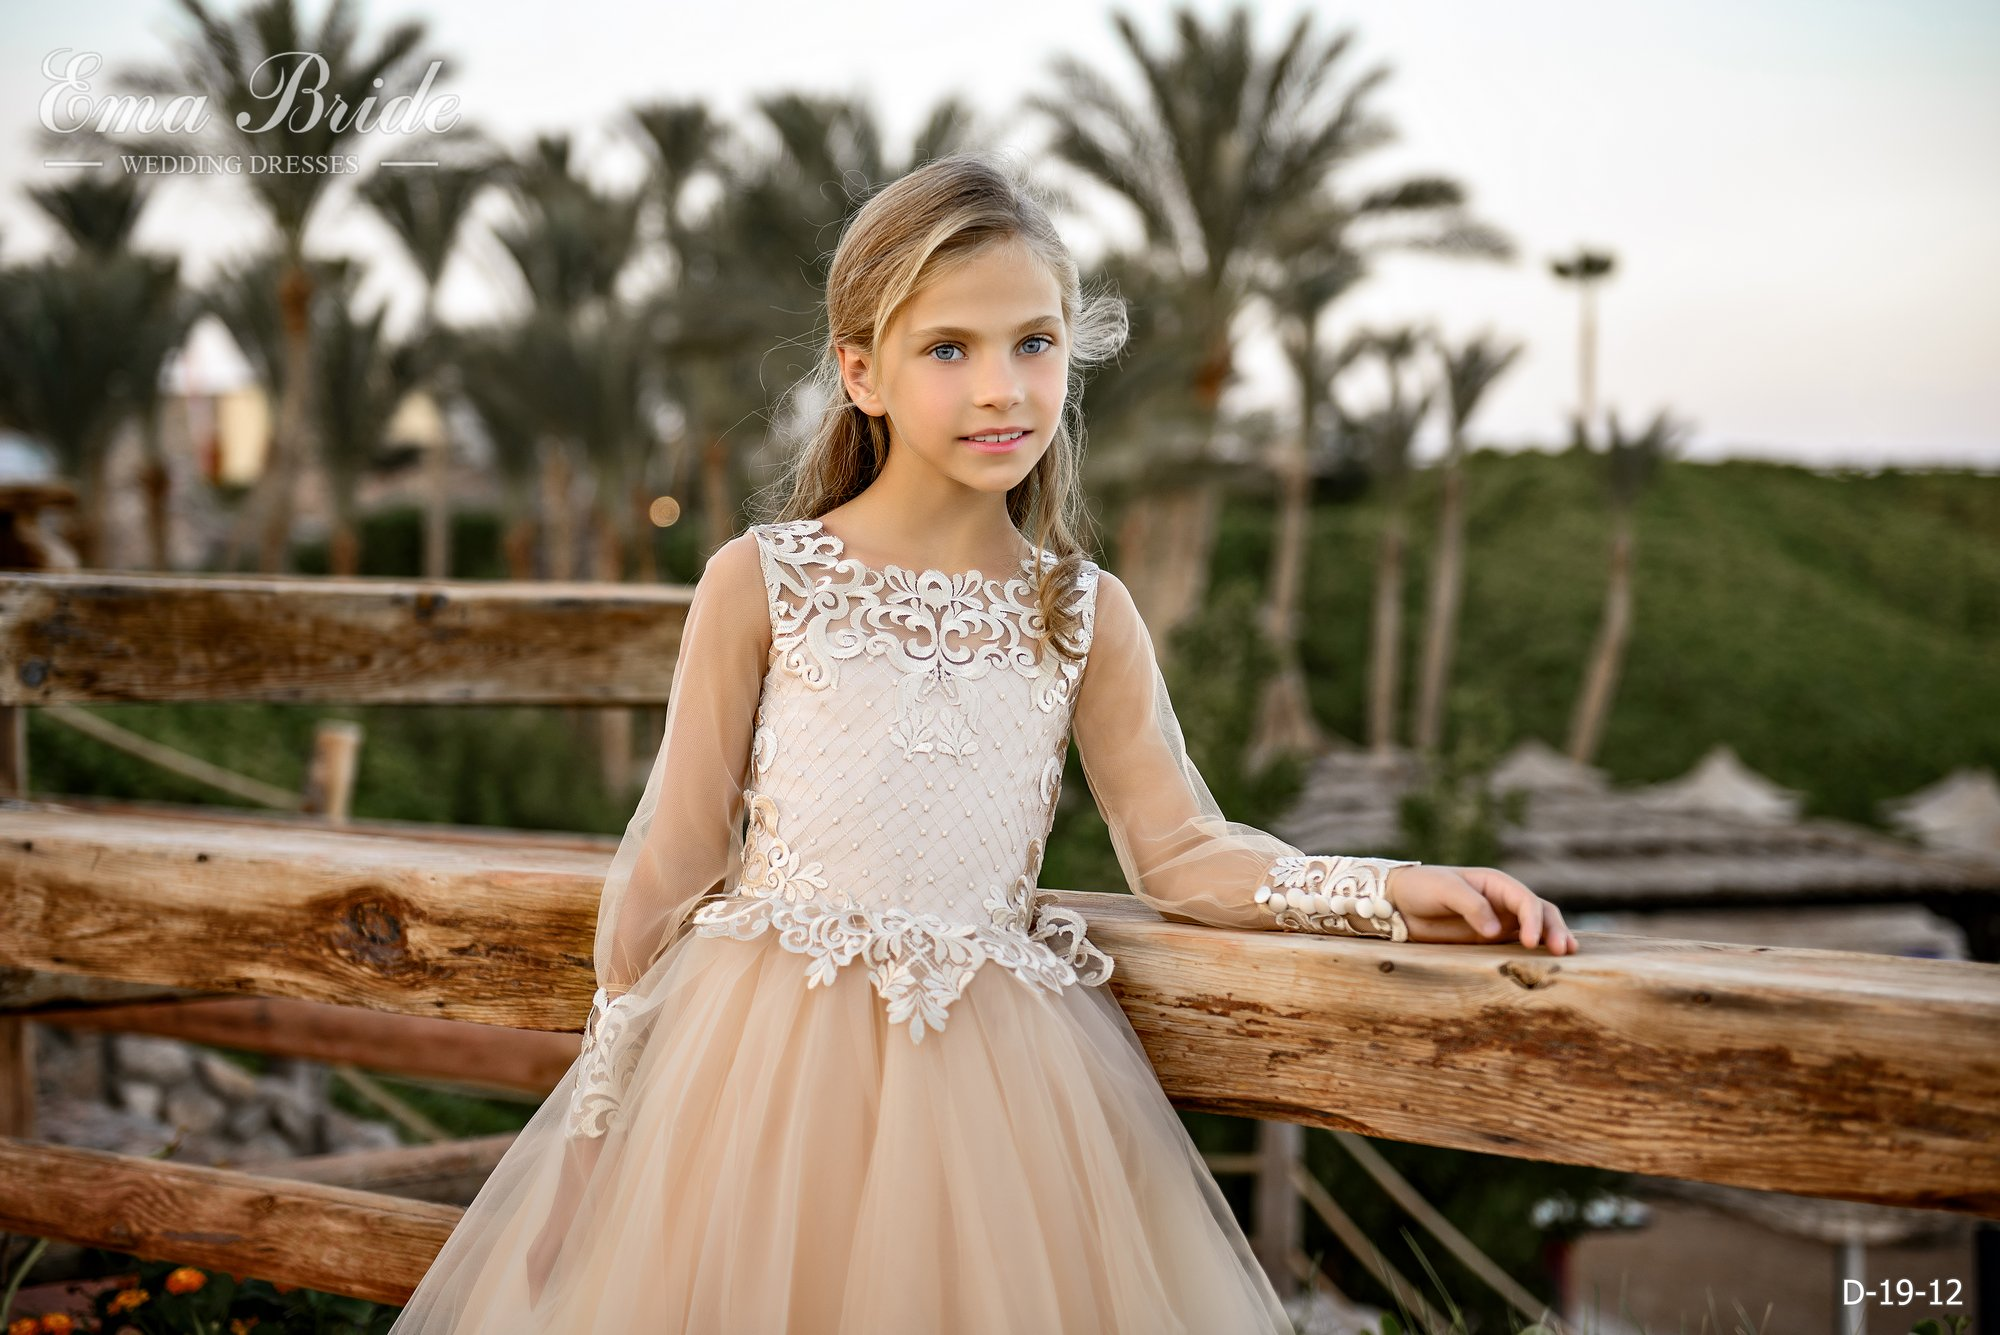 Children's dress by EmaBride D-19-12 2019-5